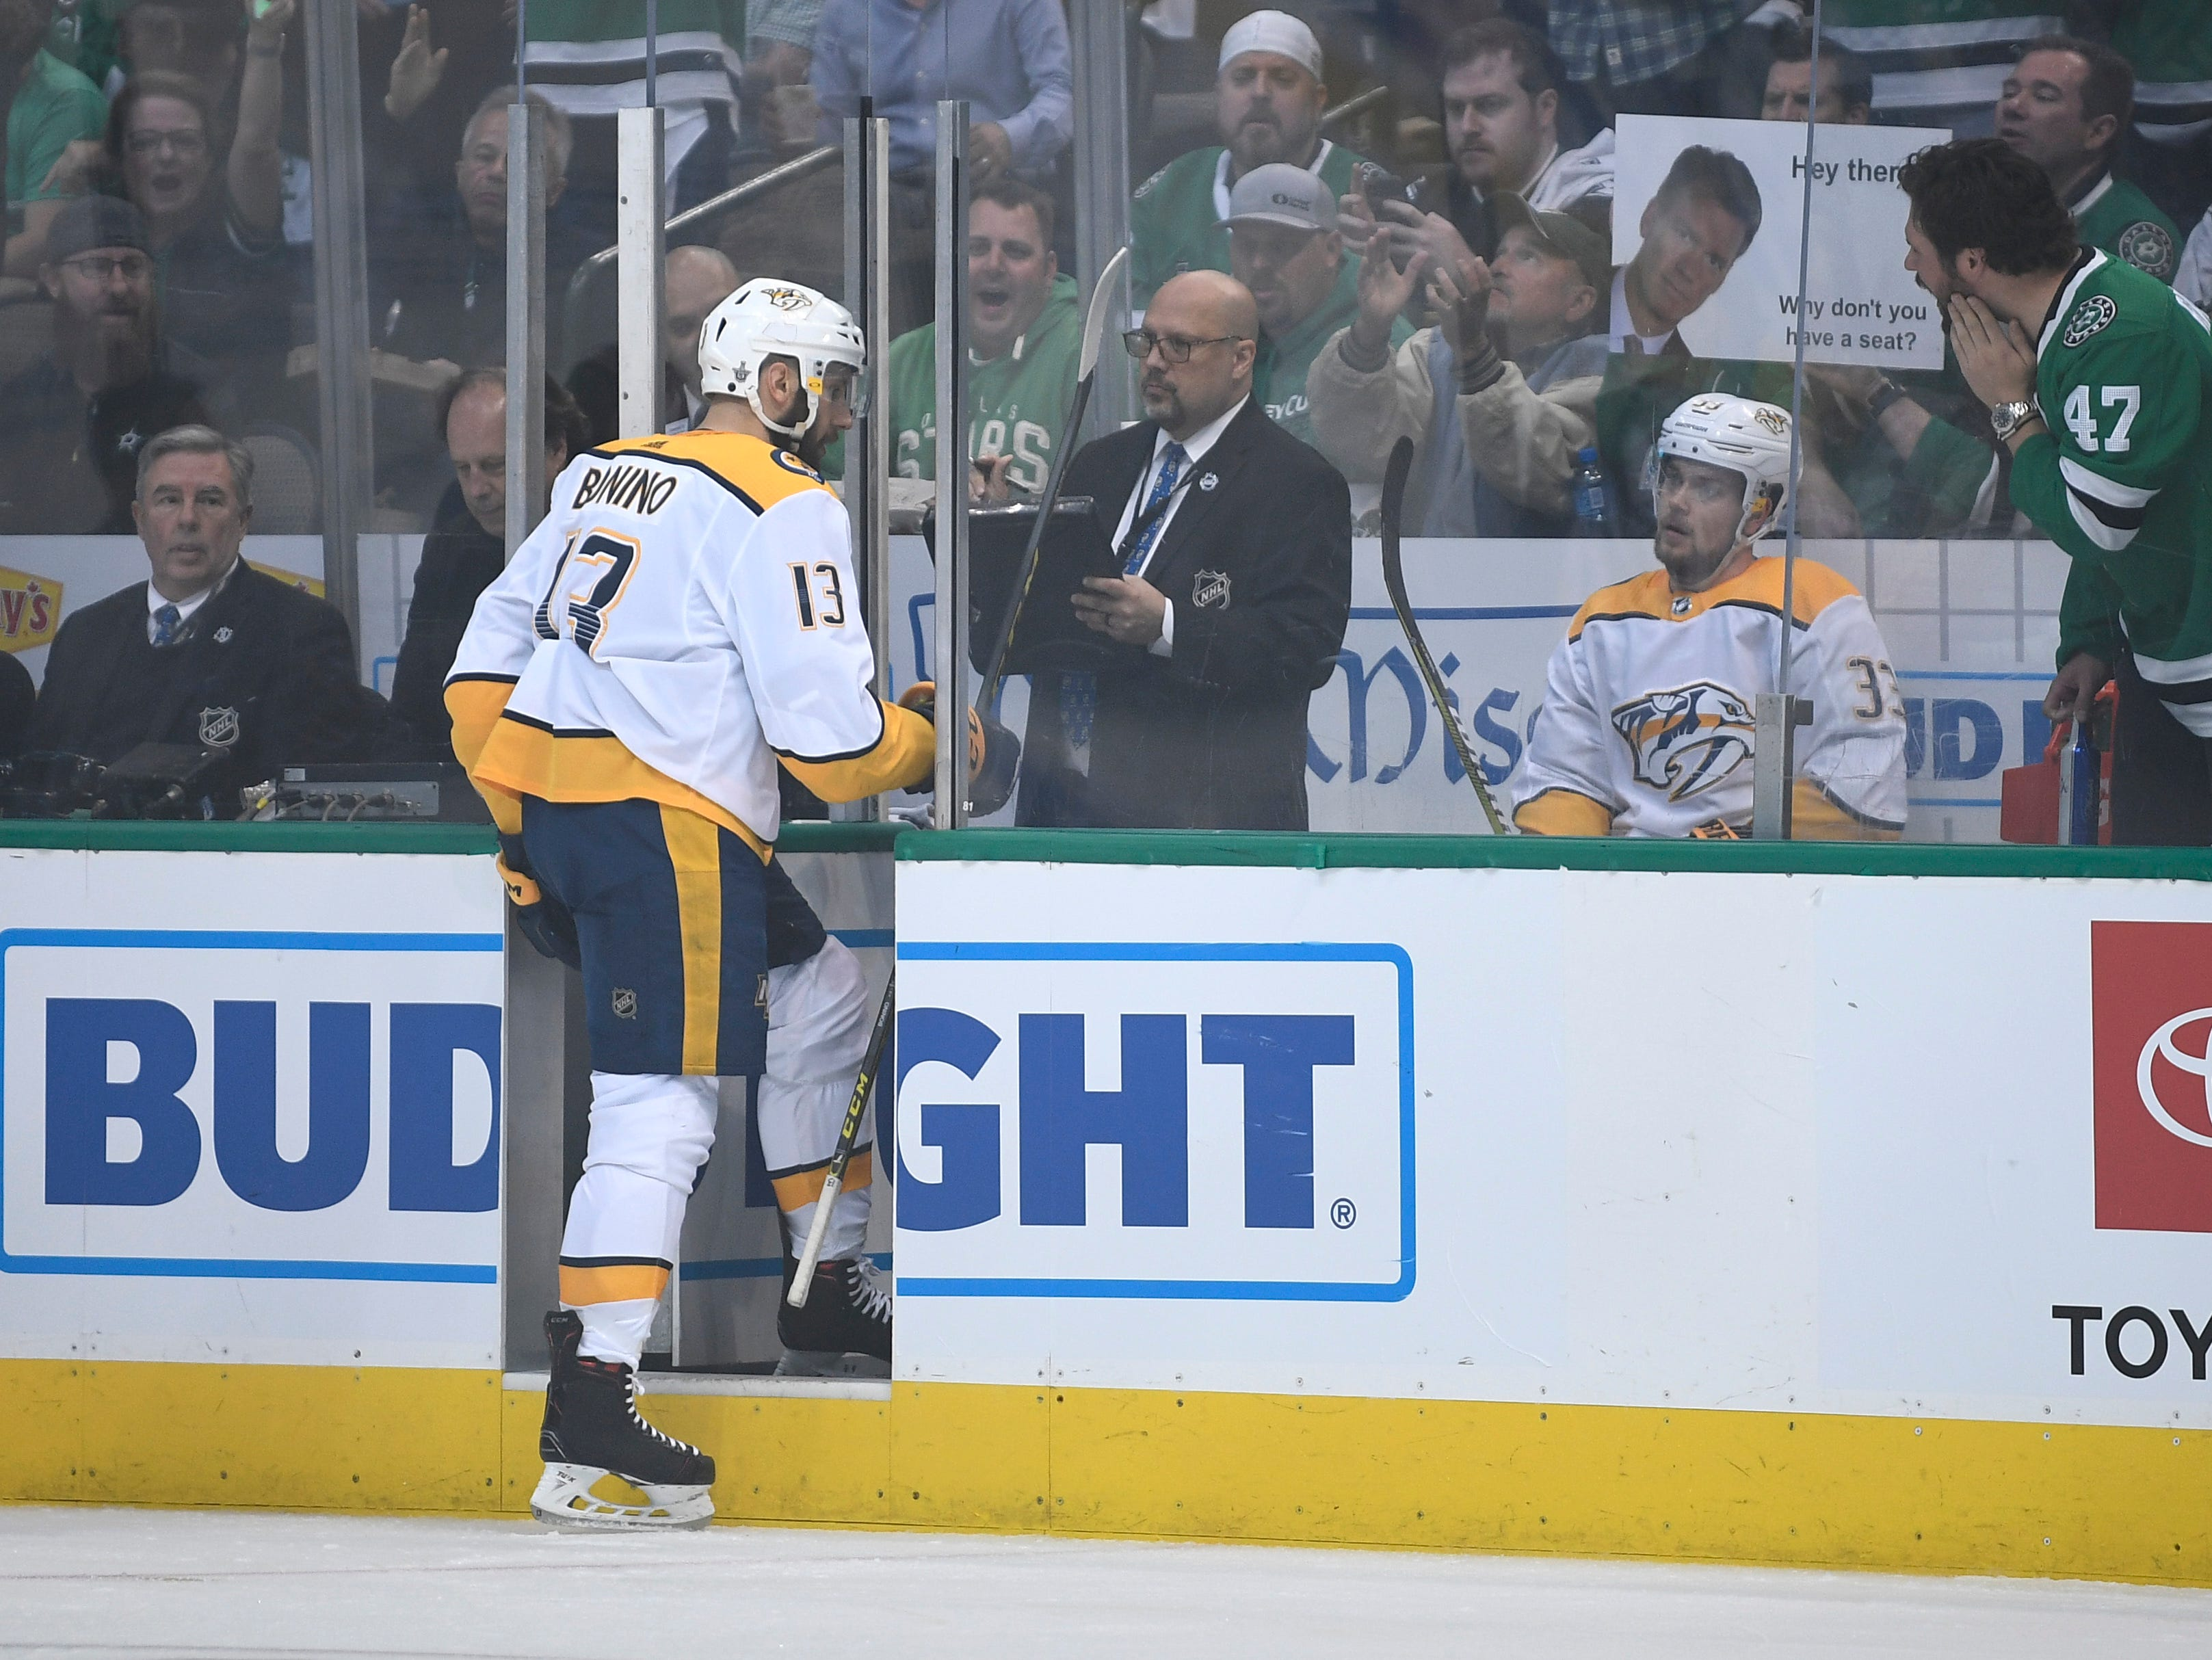 Nashville Predators center Nick Bonino (13) joins right wing Viktor Arvidsson (33) in the penalty box during the second period of the divisional semifinal game at the American Airlines Center in Dallas, Texas., Monday, April 15, 2019.